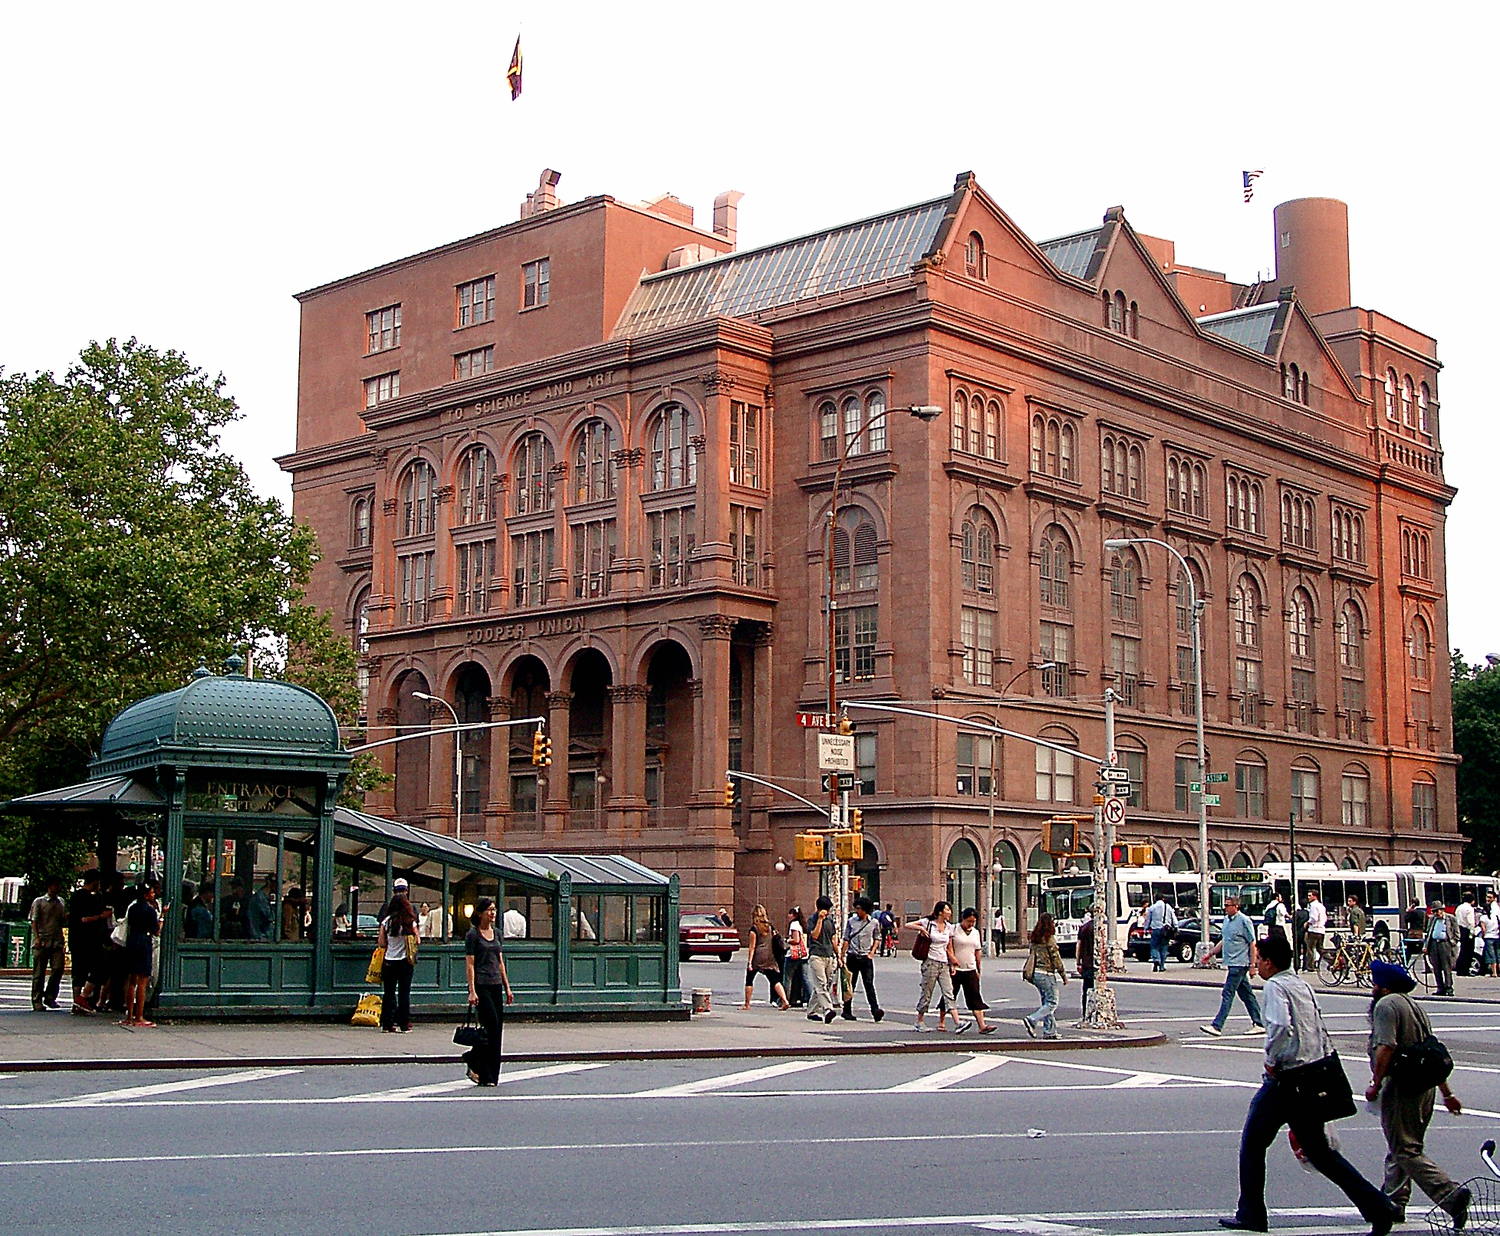 "Cooper Union | Abraham Lincoln (16th President of the United States) gave his immortal <a href=""http://showcase.netins.net/web/creative/lincoln/speeches/cooper.htm"" rel=""nofollow"">'Cooper Union Address'</a> in this building on February 27, 1860.  The building is easy to find in Manhattan, just two short blocks east of Broadway on East 8th Street.  [06190020]"